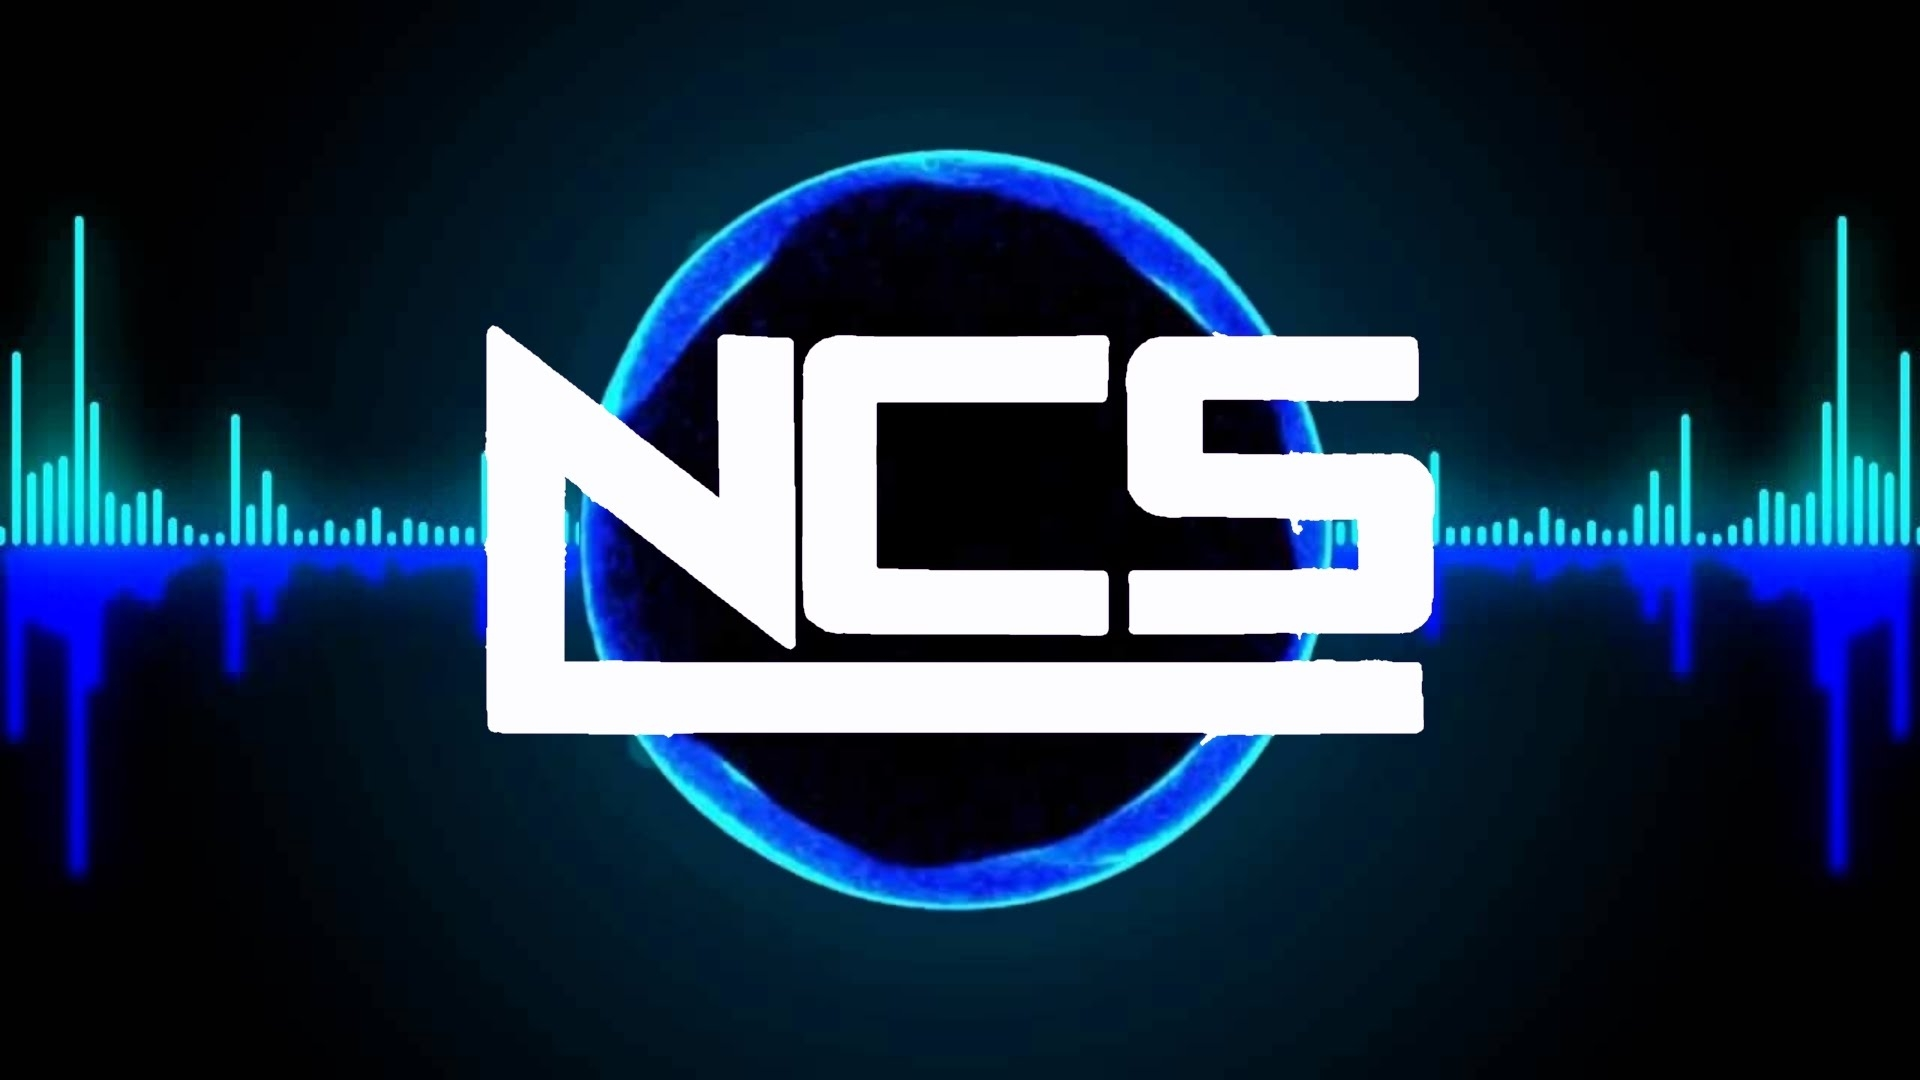 Free-cool-background-music-for-games-Download-Best-Ncs-Gaming-Video-Background-Music-No-Copyrigh-wallpaper-wpc9005152